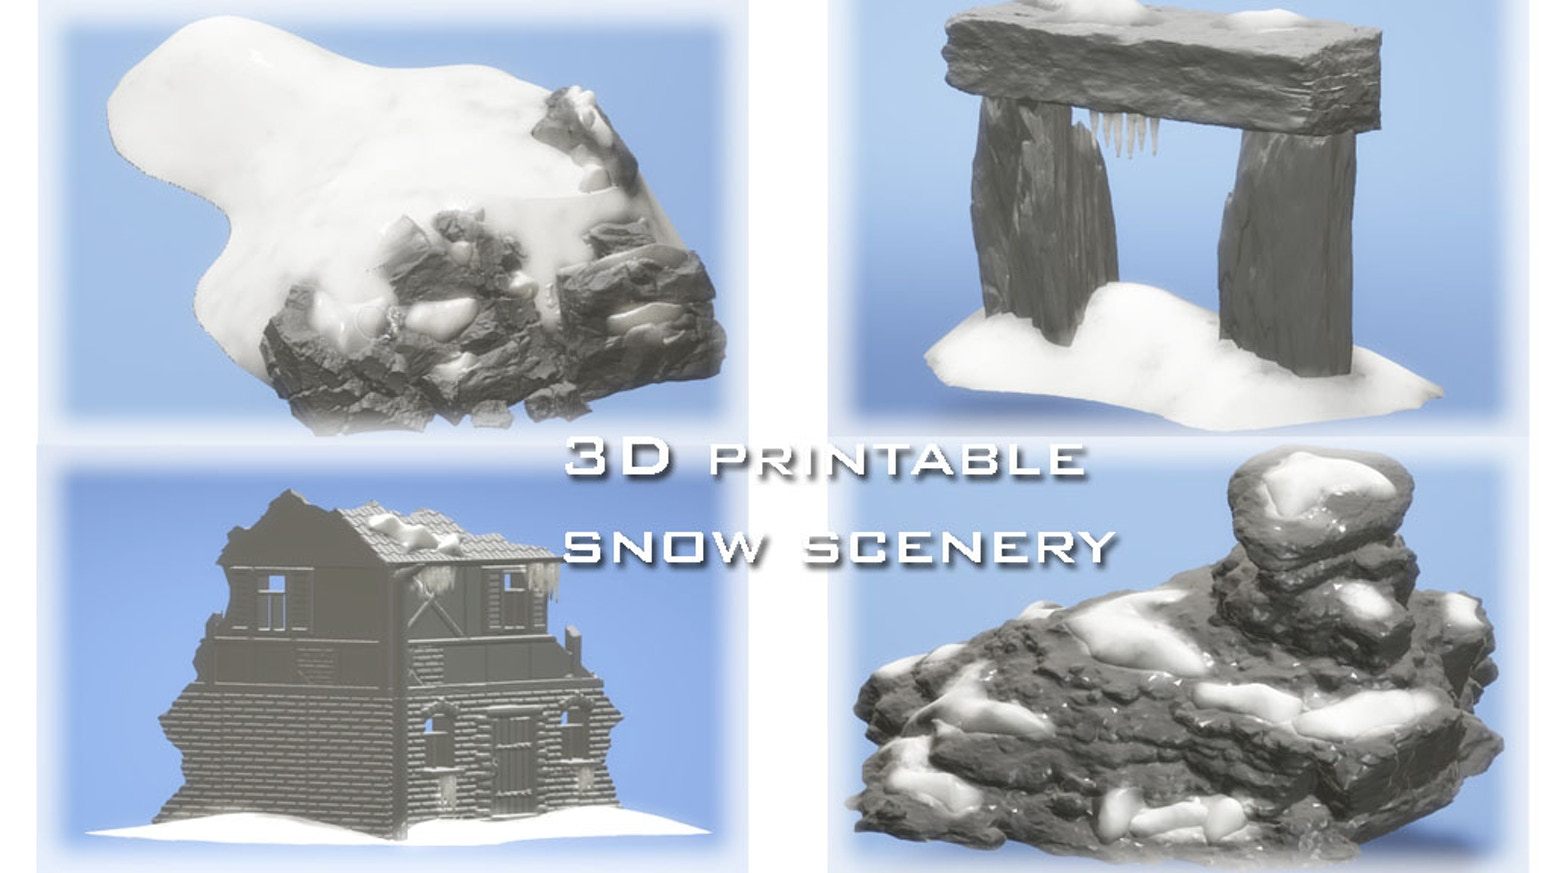 3D printable (STL Files) snow scenery for your 3D home printer